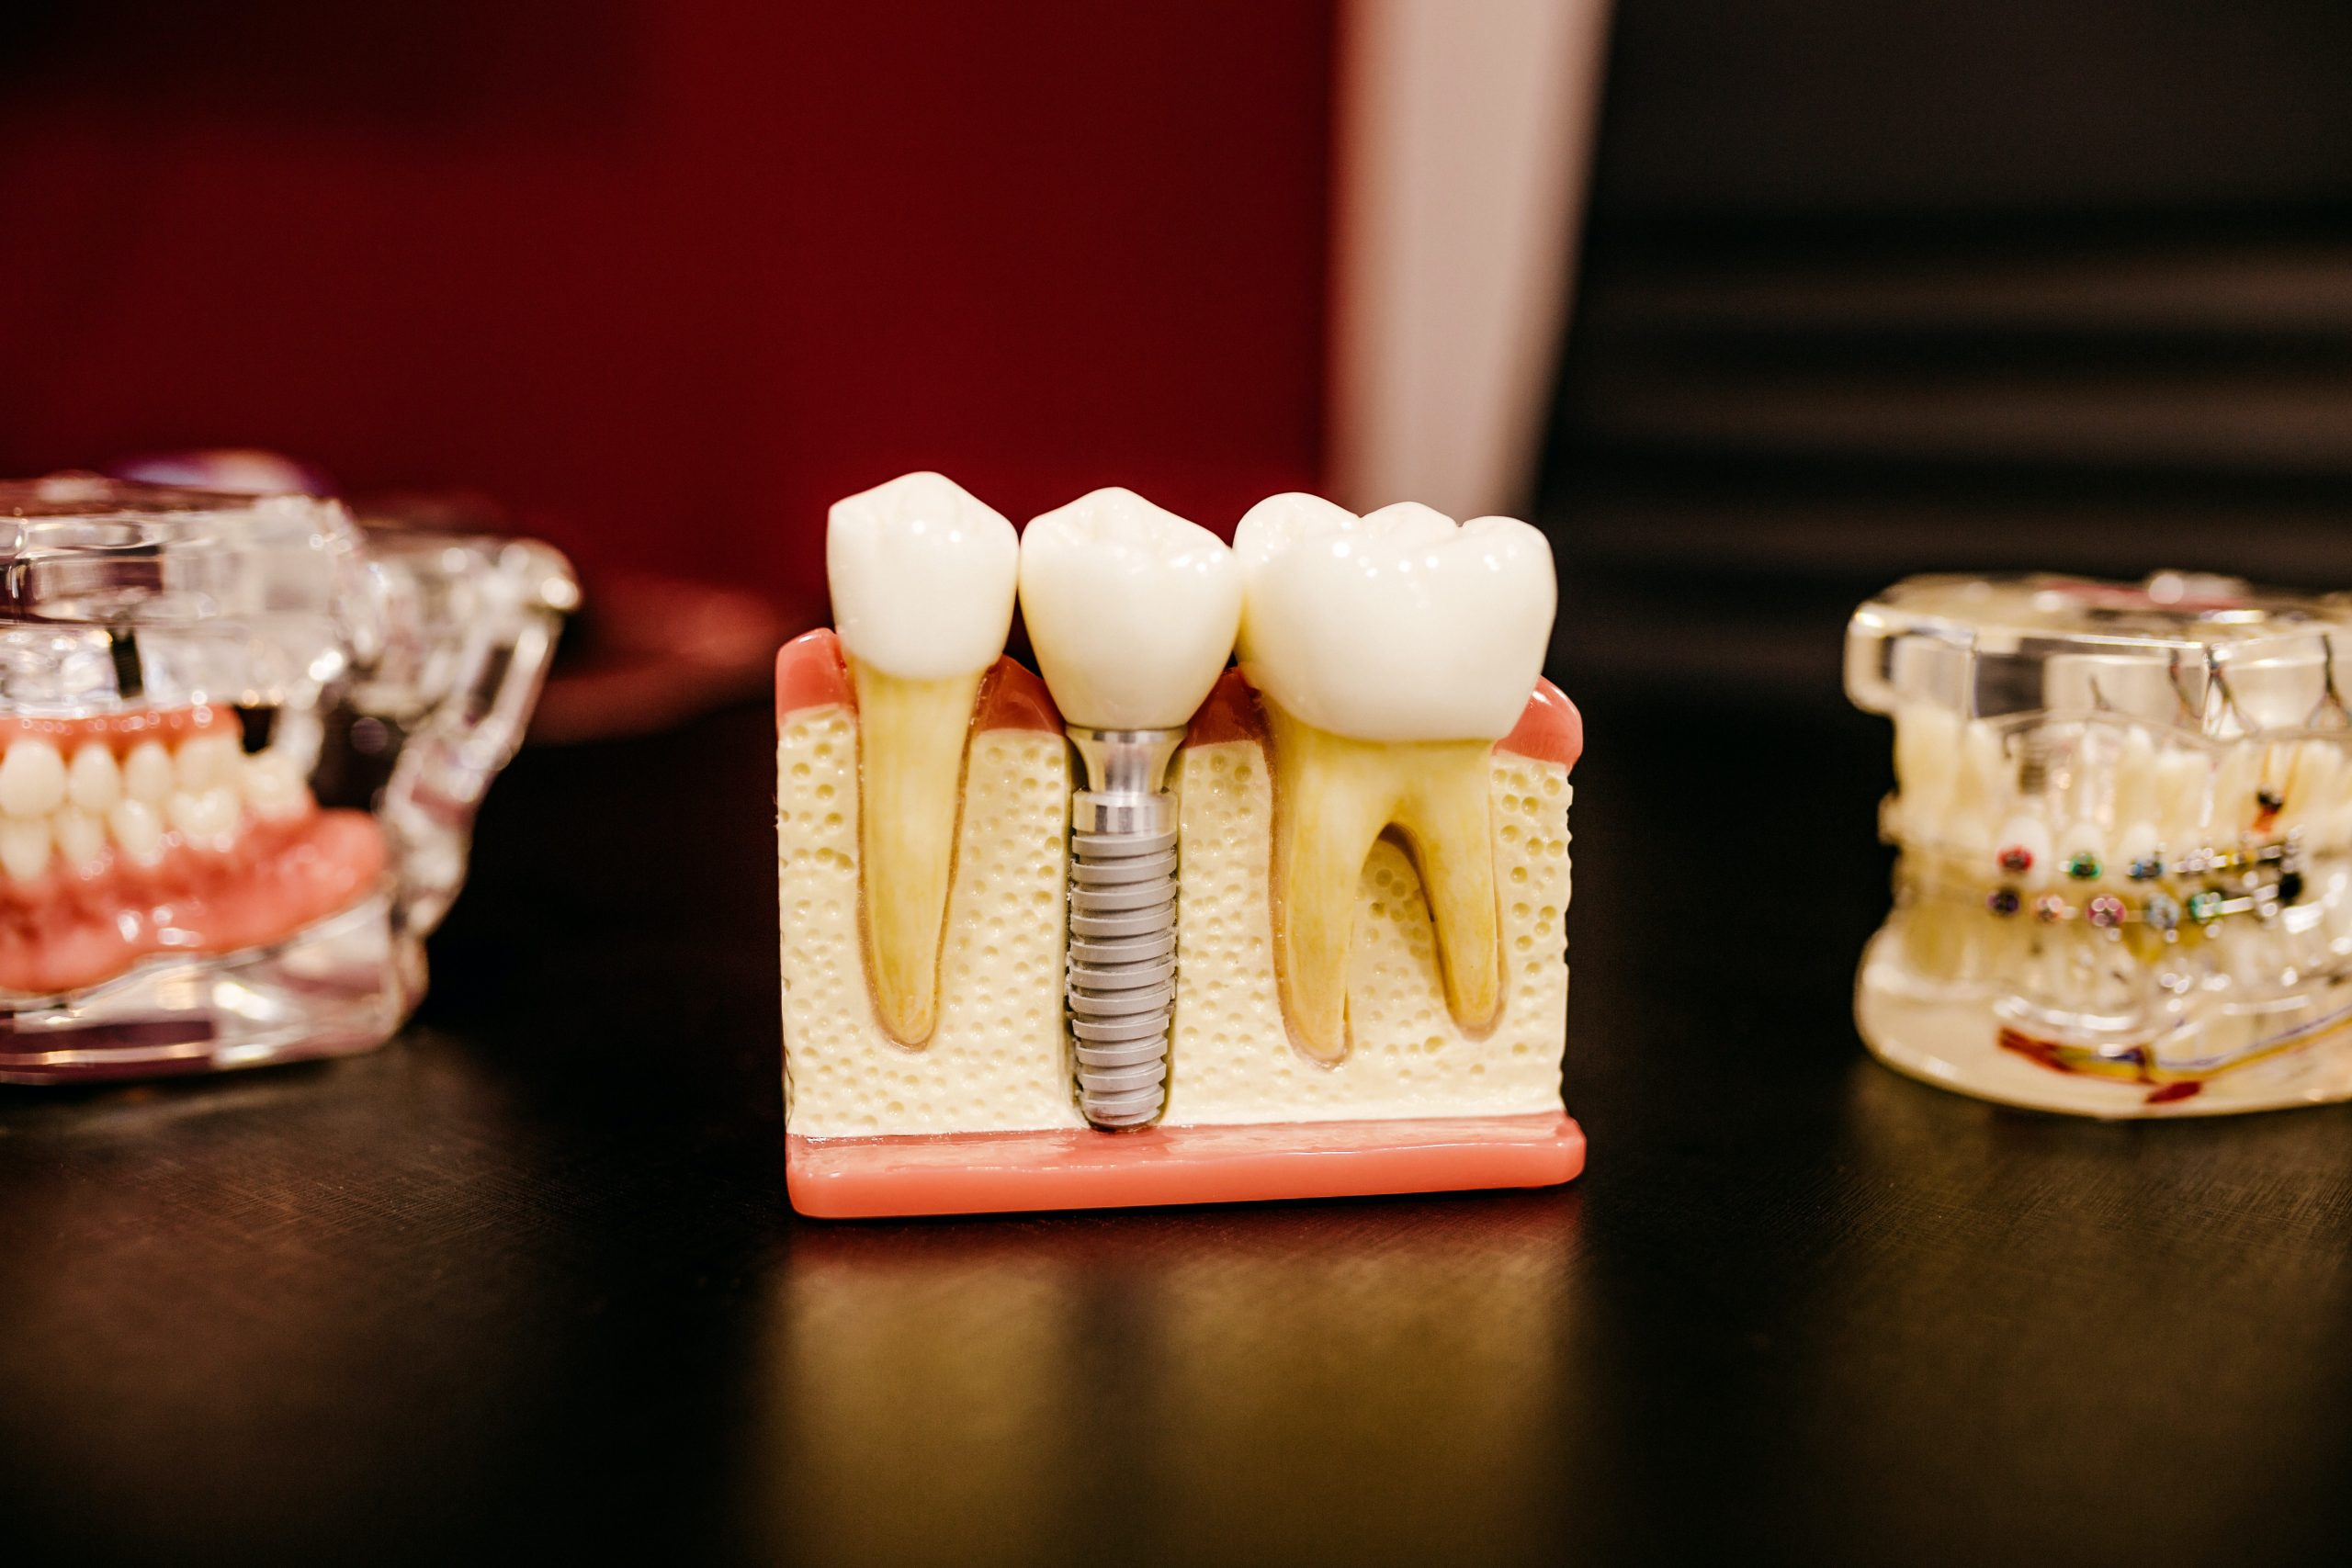 a dental model of teeth